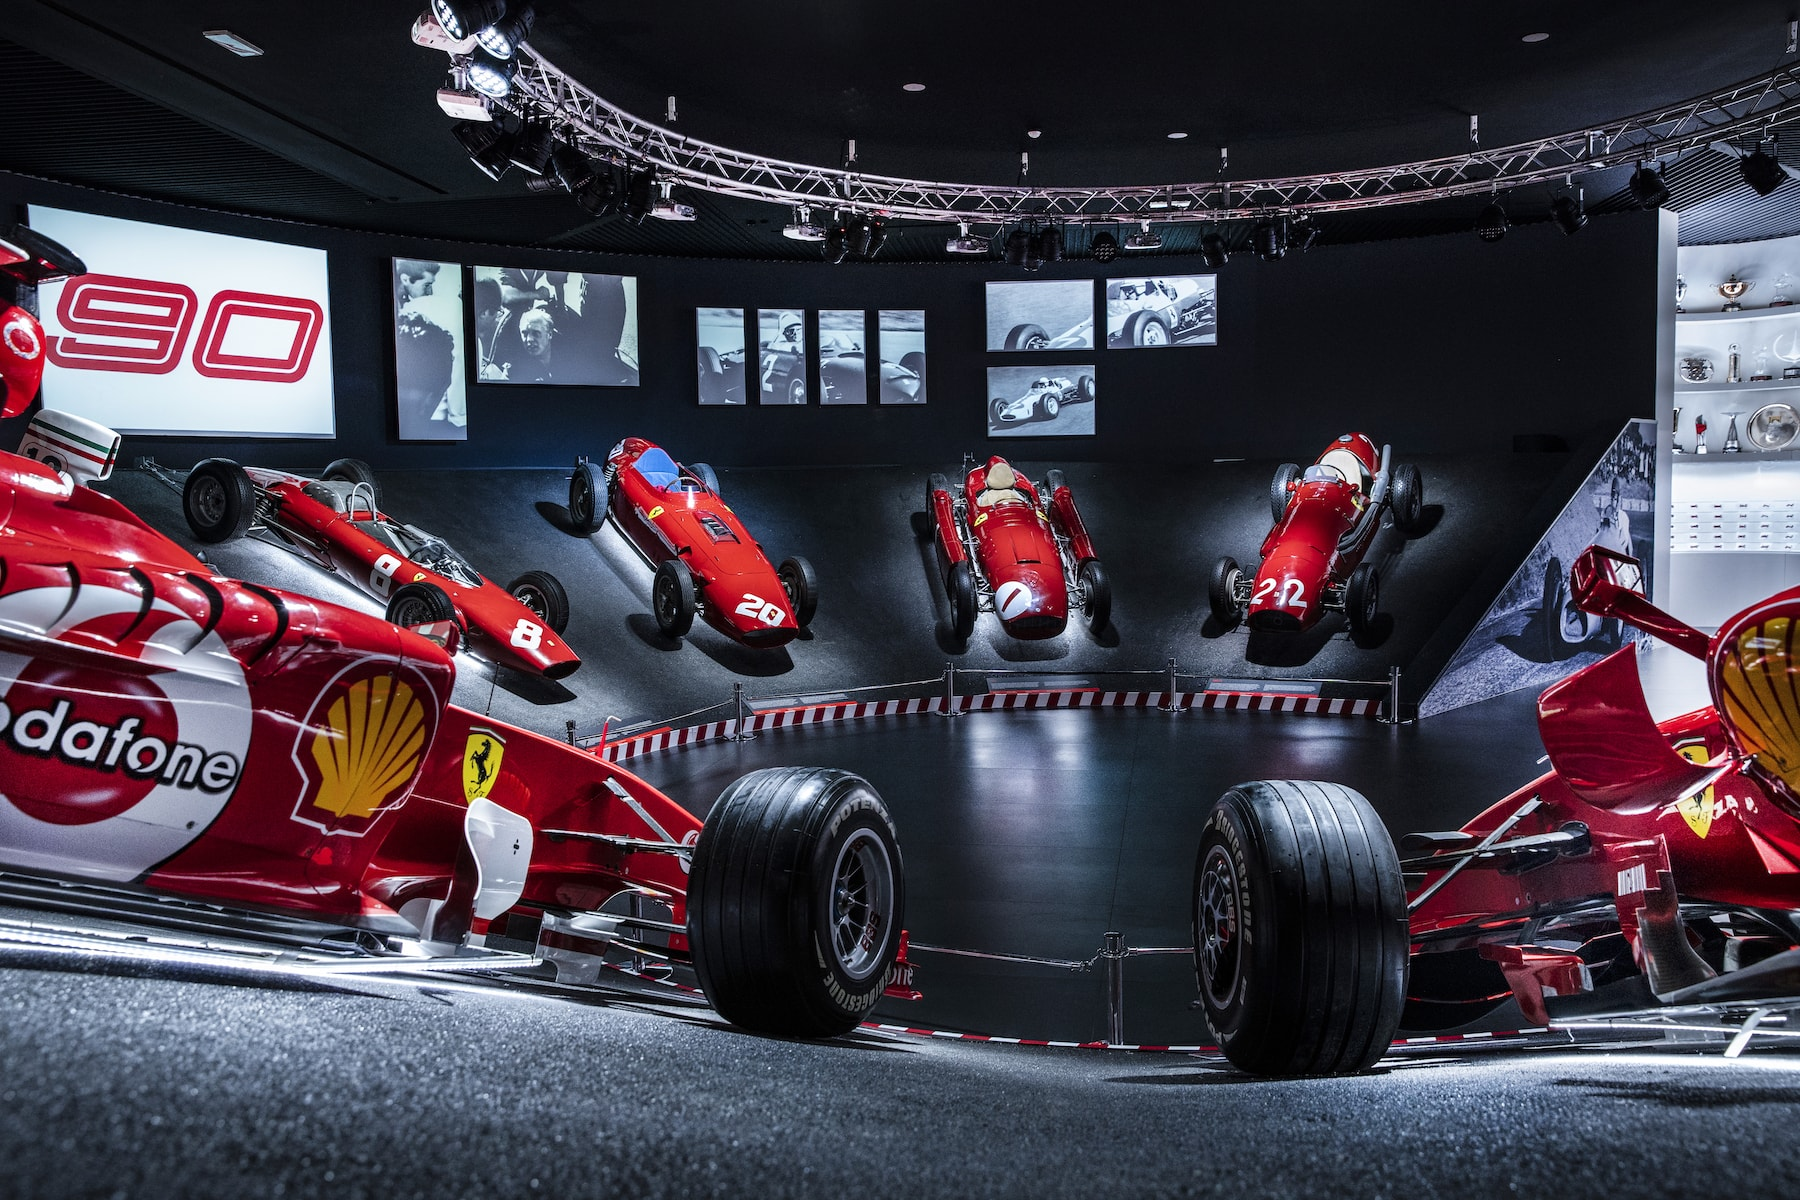 2019 Museo Ferrari 90 years exhibition 1.jpg